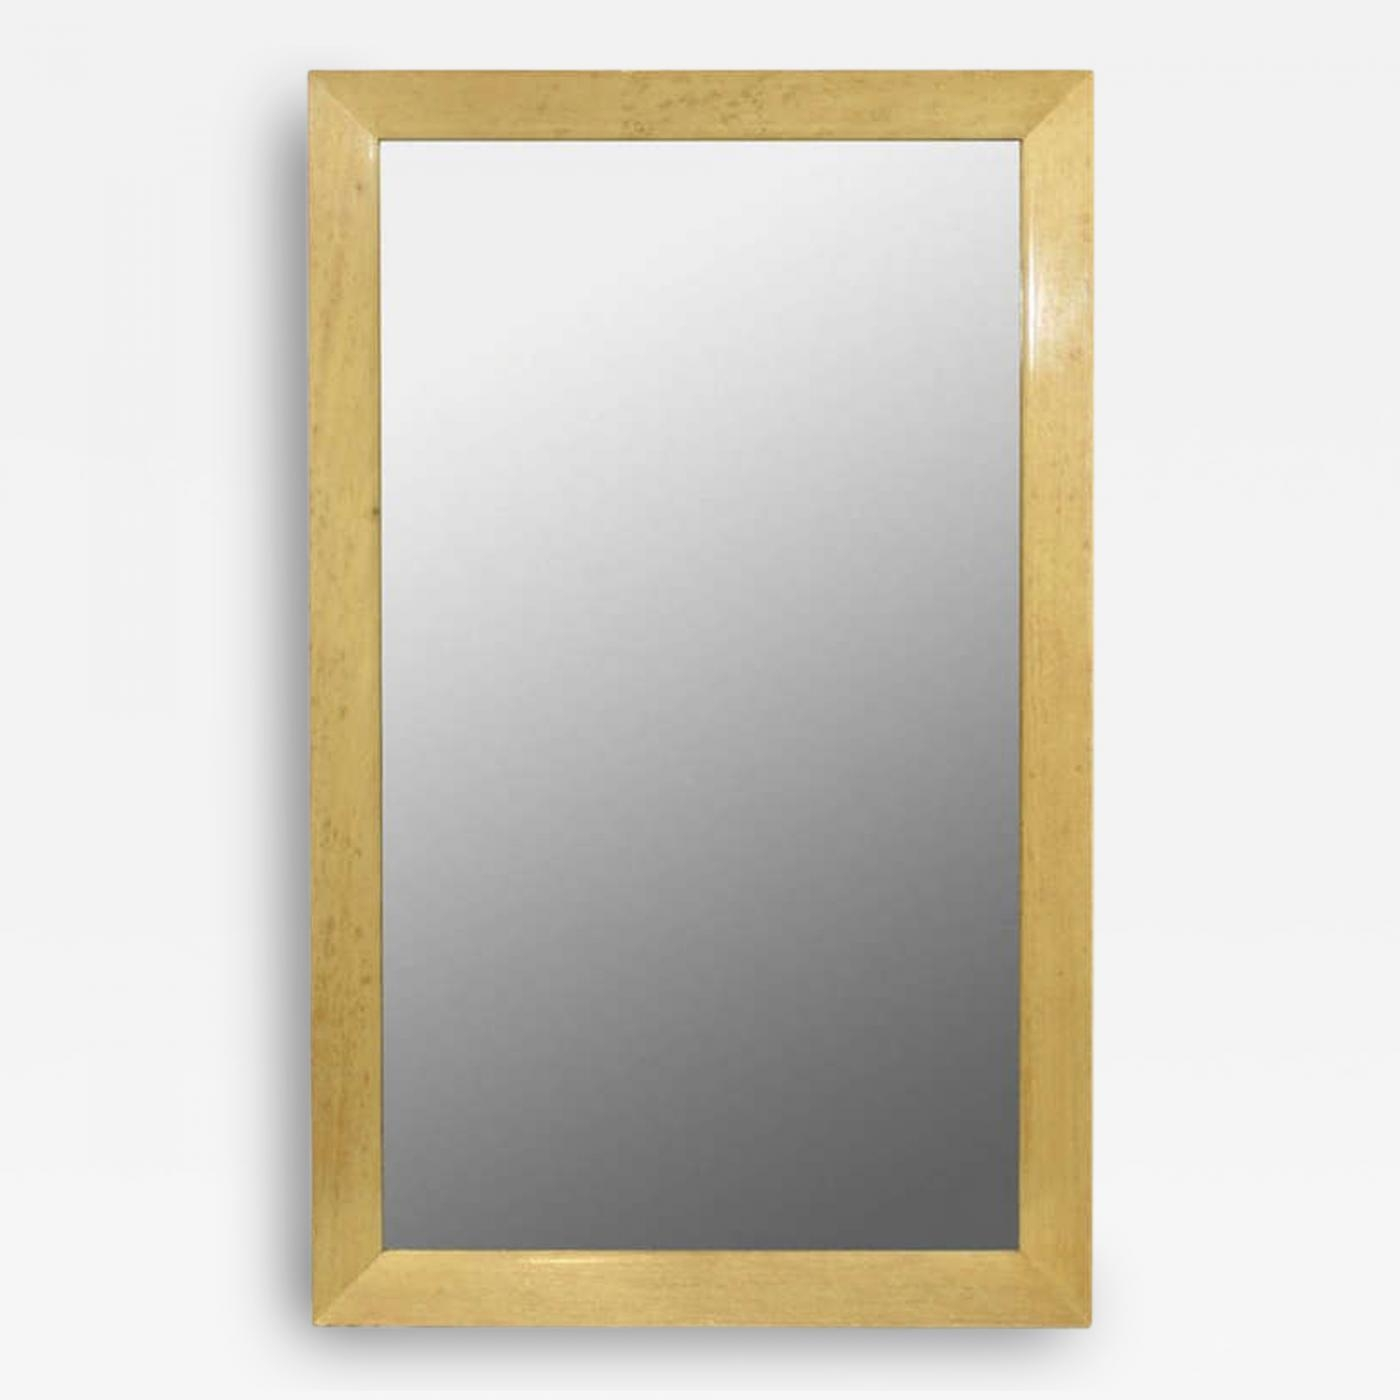 Paul T Frankl An Oak Framed Wall Mirror Paul Frankl For Johnson Pertaining To Oak Framed Wall Mirrors (Image 12 of 15)